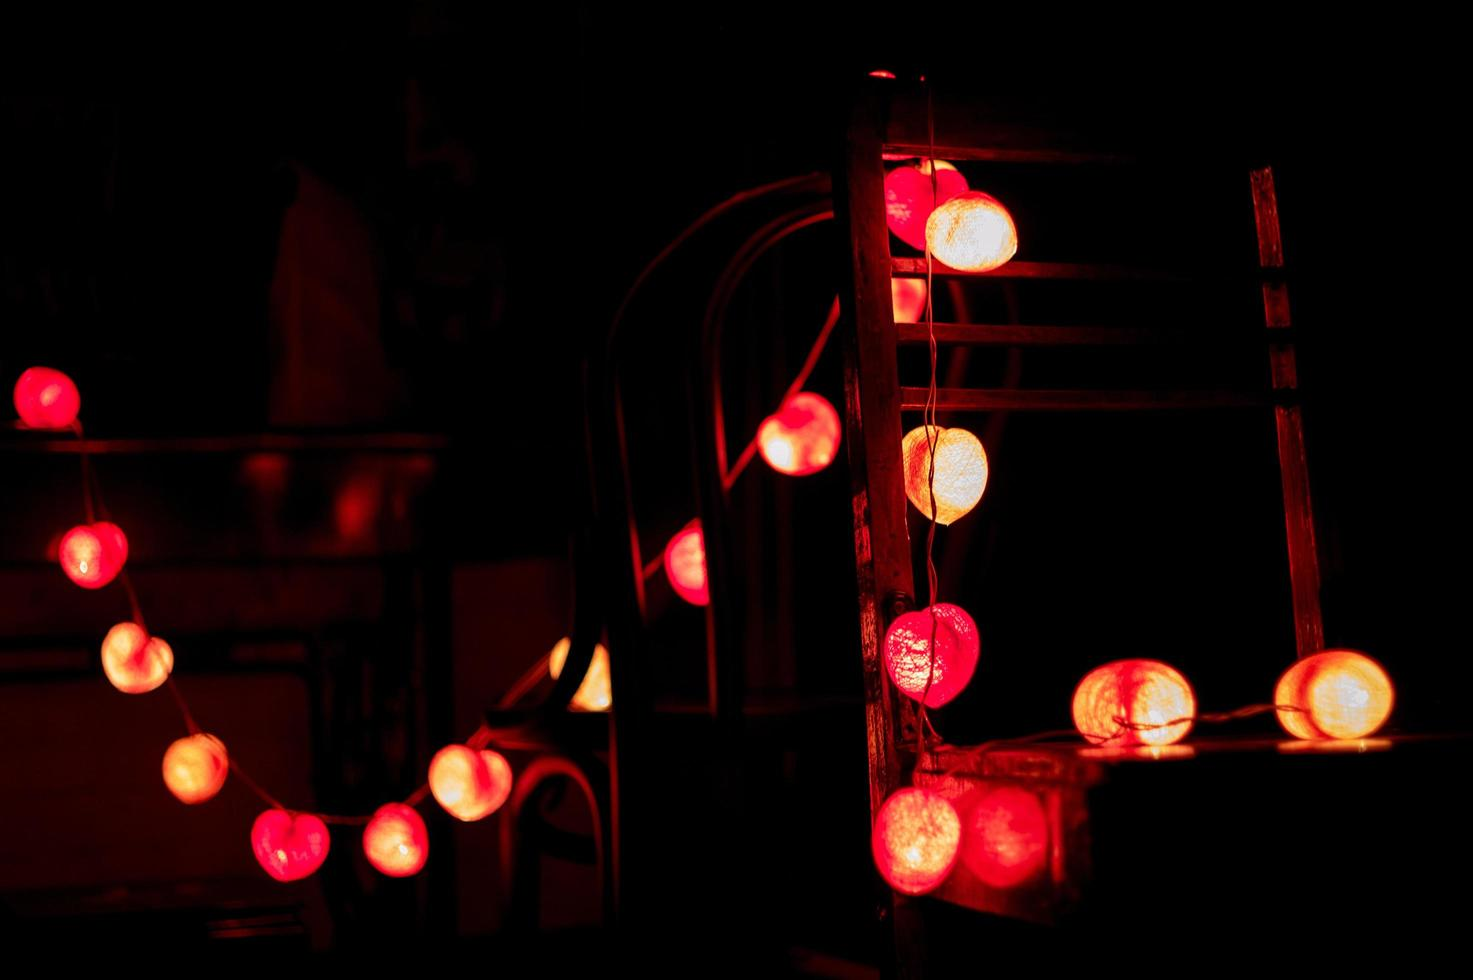 Closeup heart-shaped LED lights hanging on wooden chairs decorated in the darkroom photo